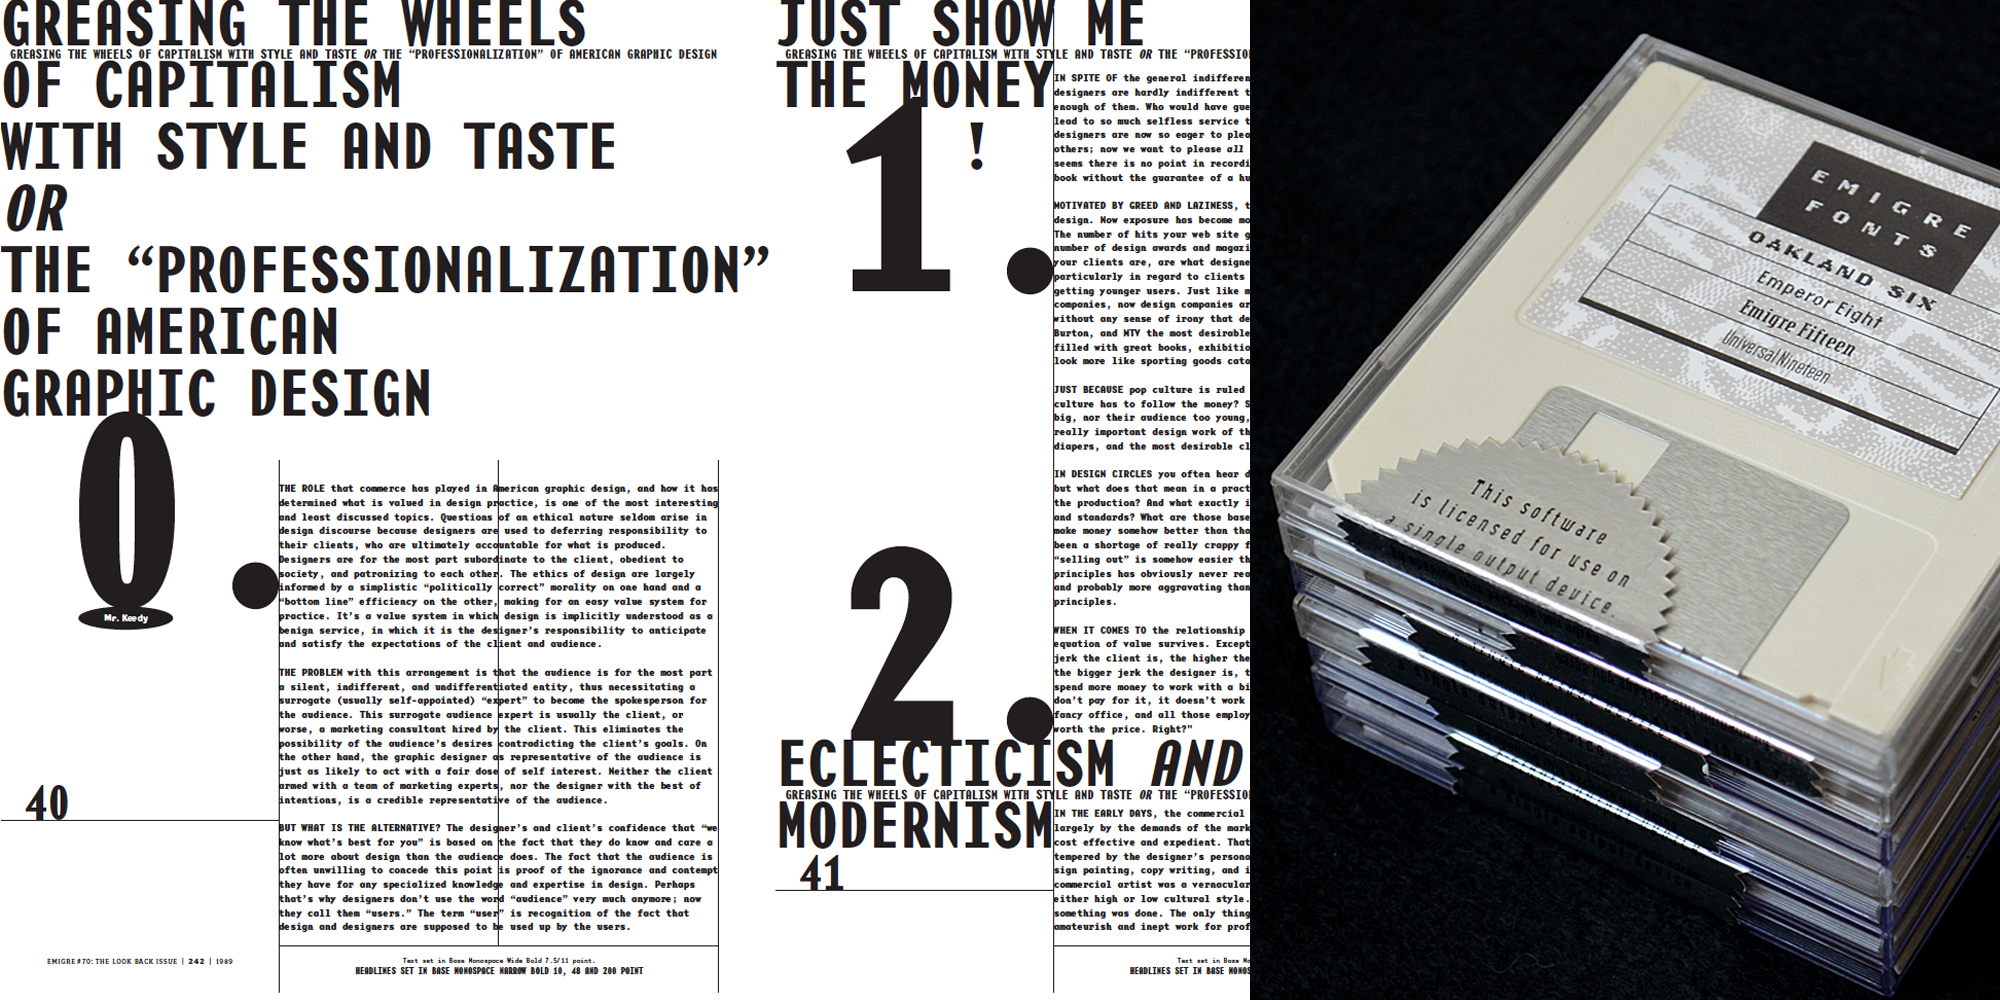 Left: A spread from issue 43 of the Emigre magazine from 1997, exploring the dark side of design - Greed, exploitation and selling out. Right: A stack of Emigres floppy disks, used to distribute their fonts.